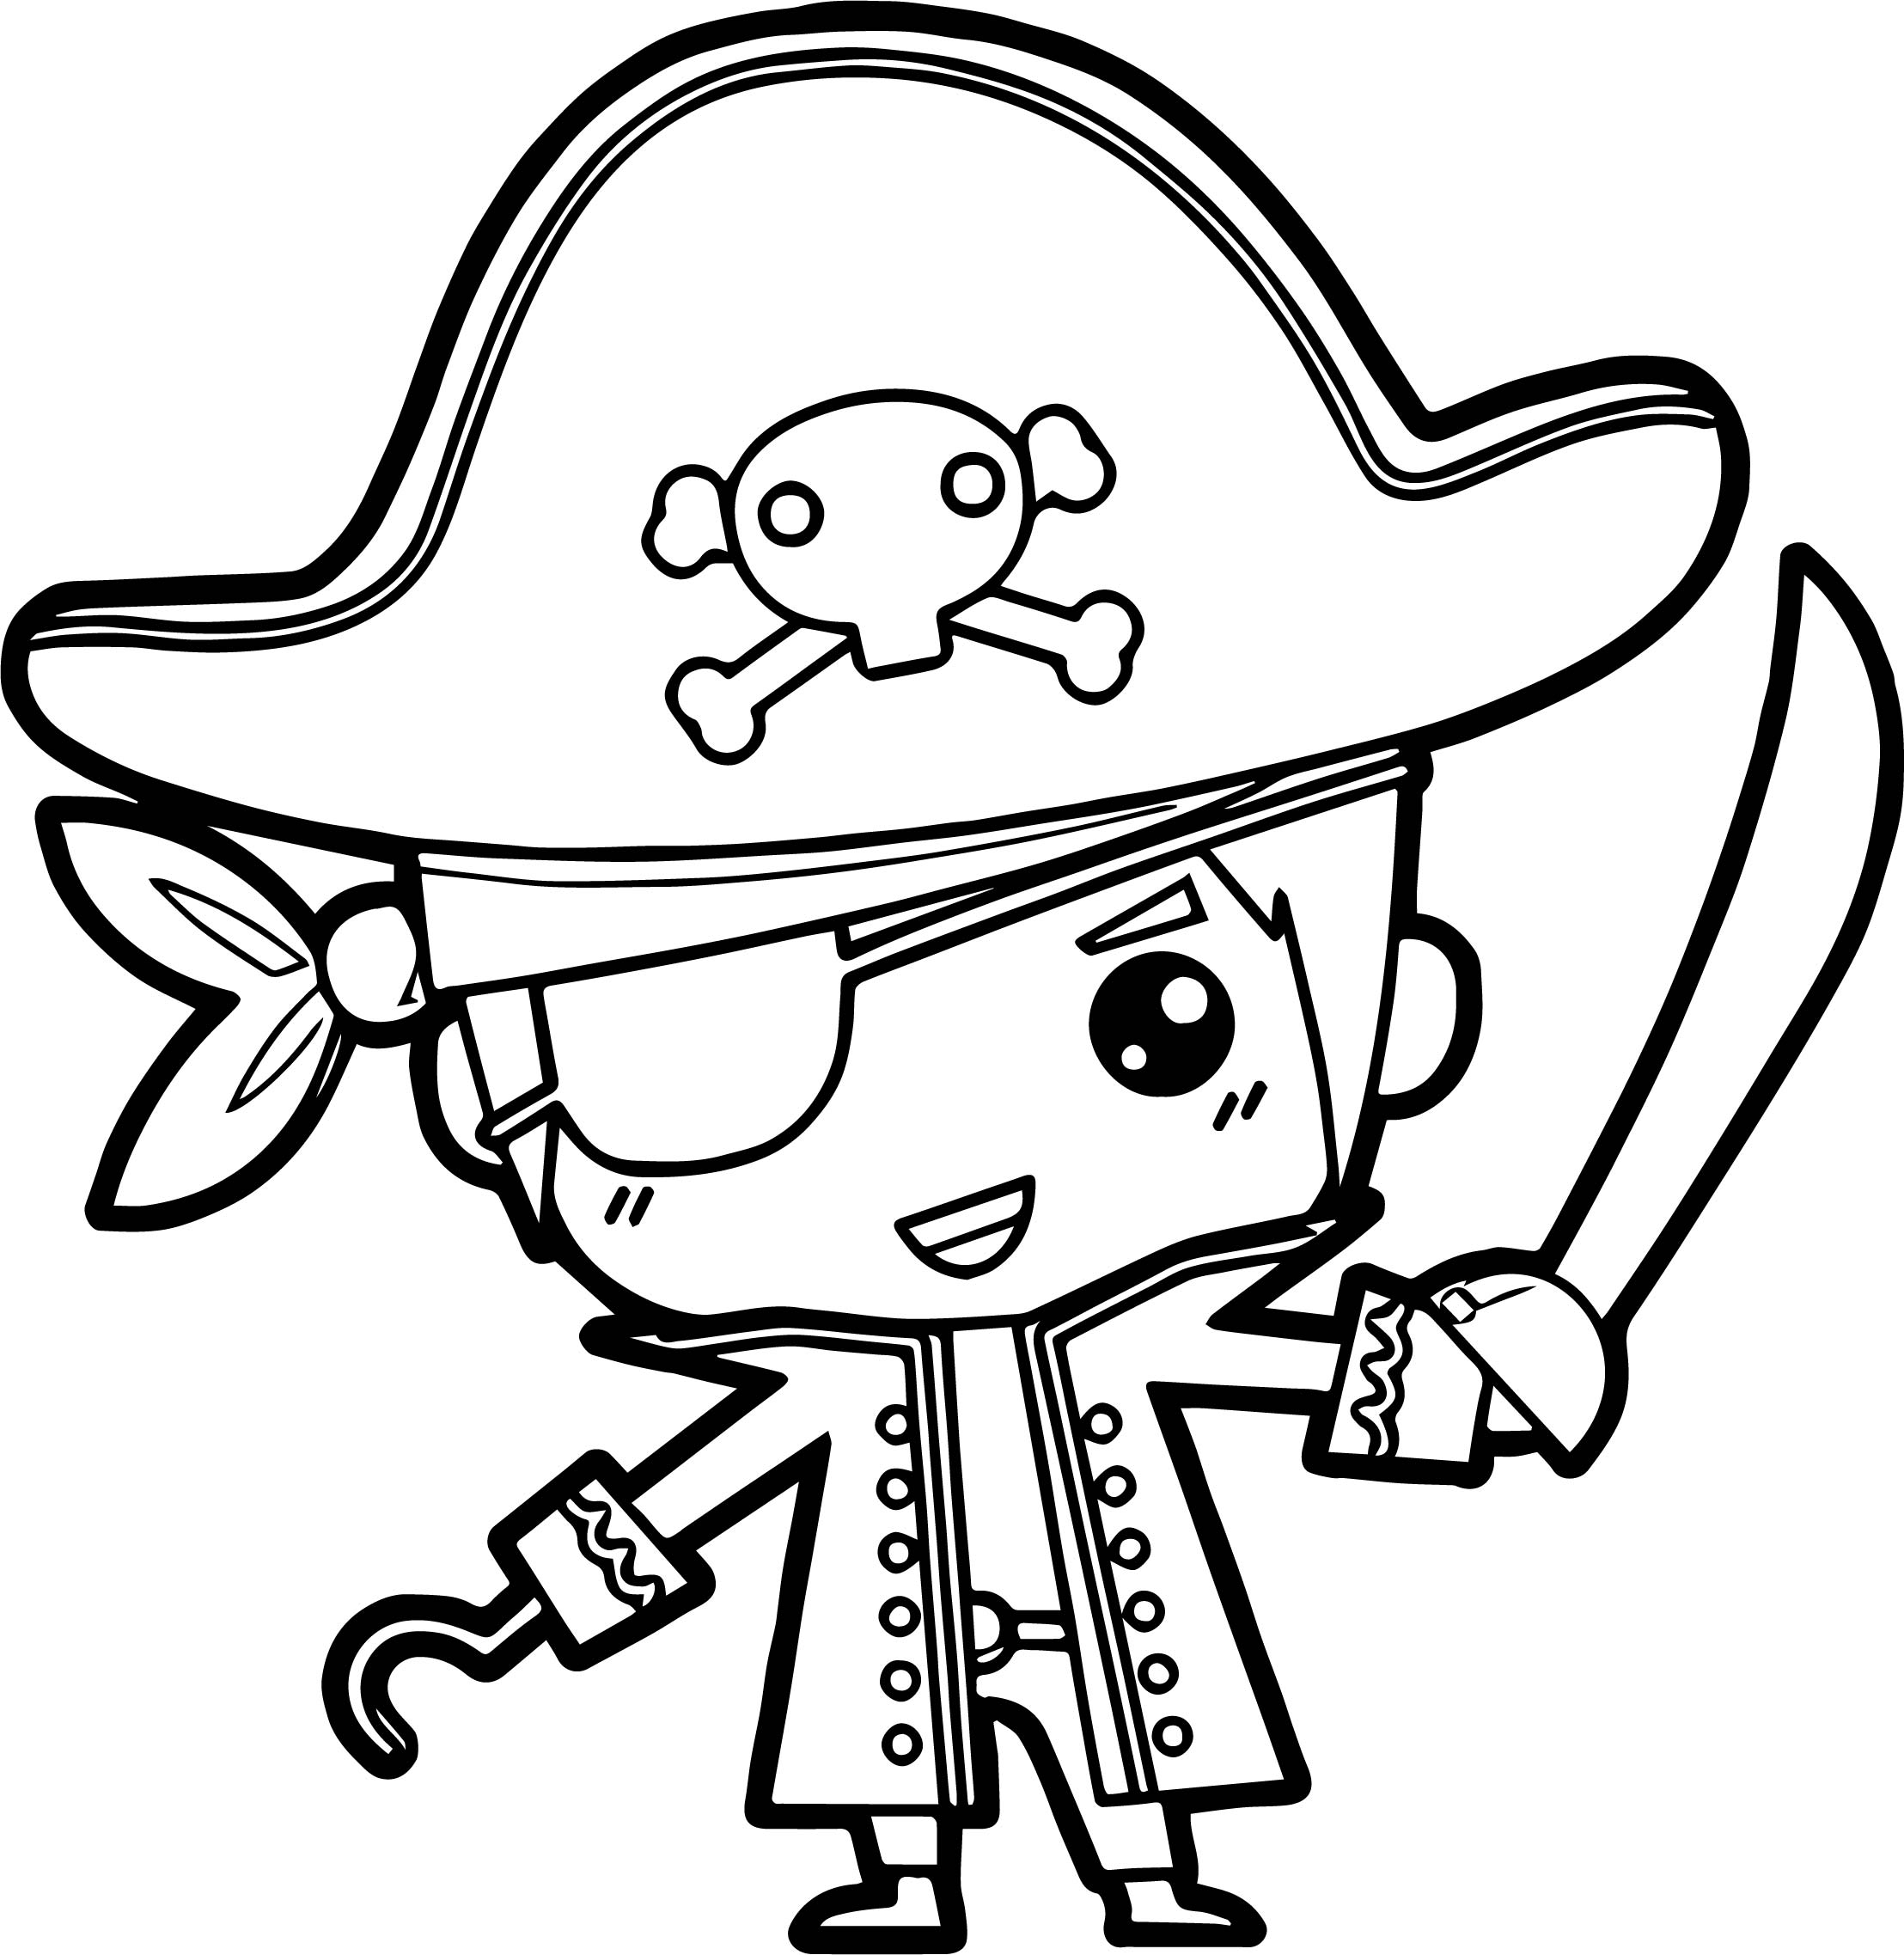 pirate hat coloring page   coloring pages ideas amp reviews